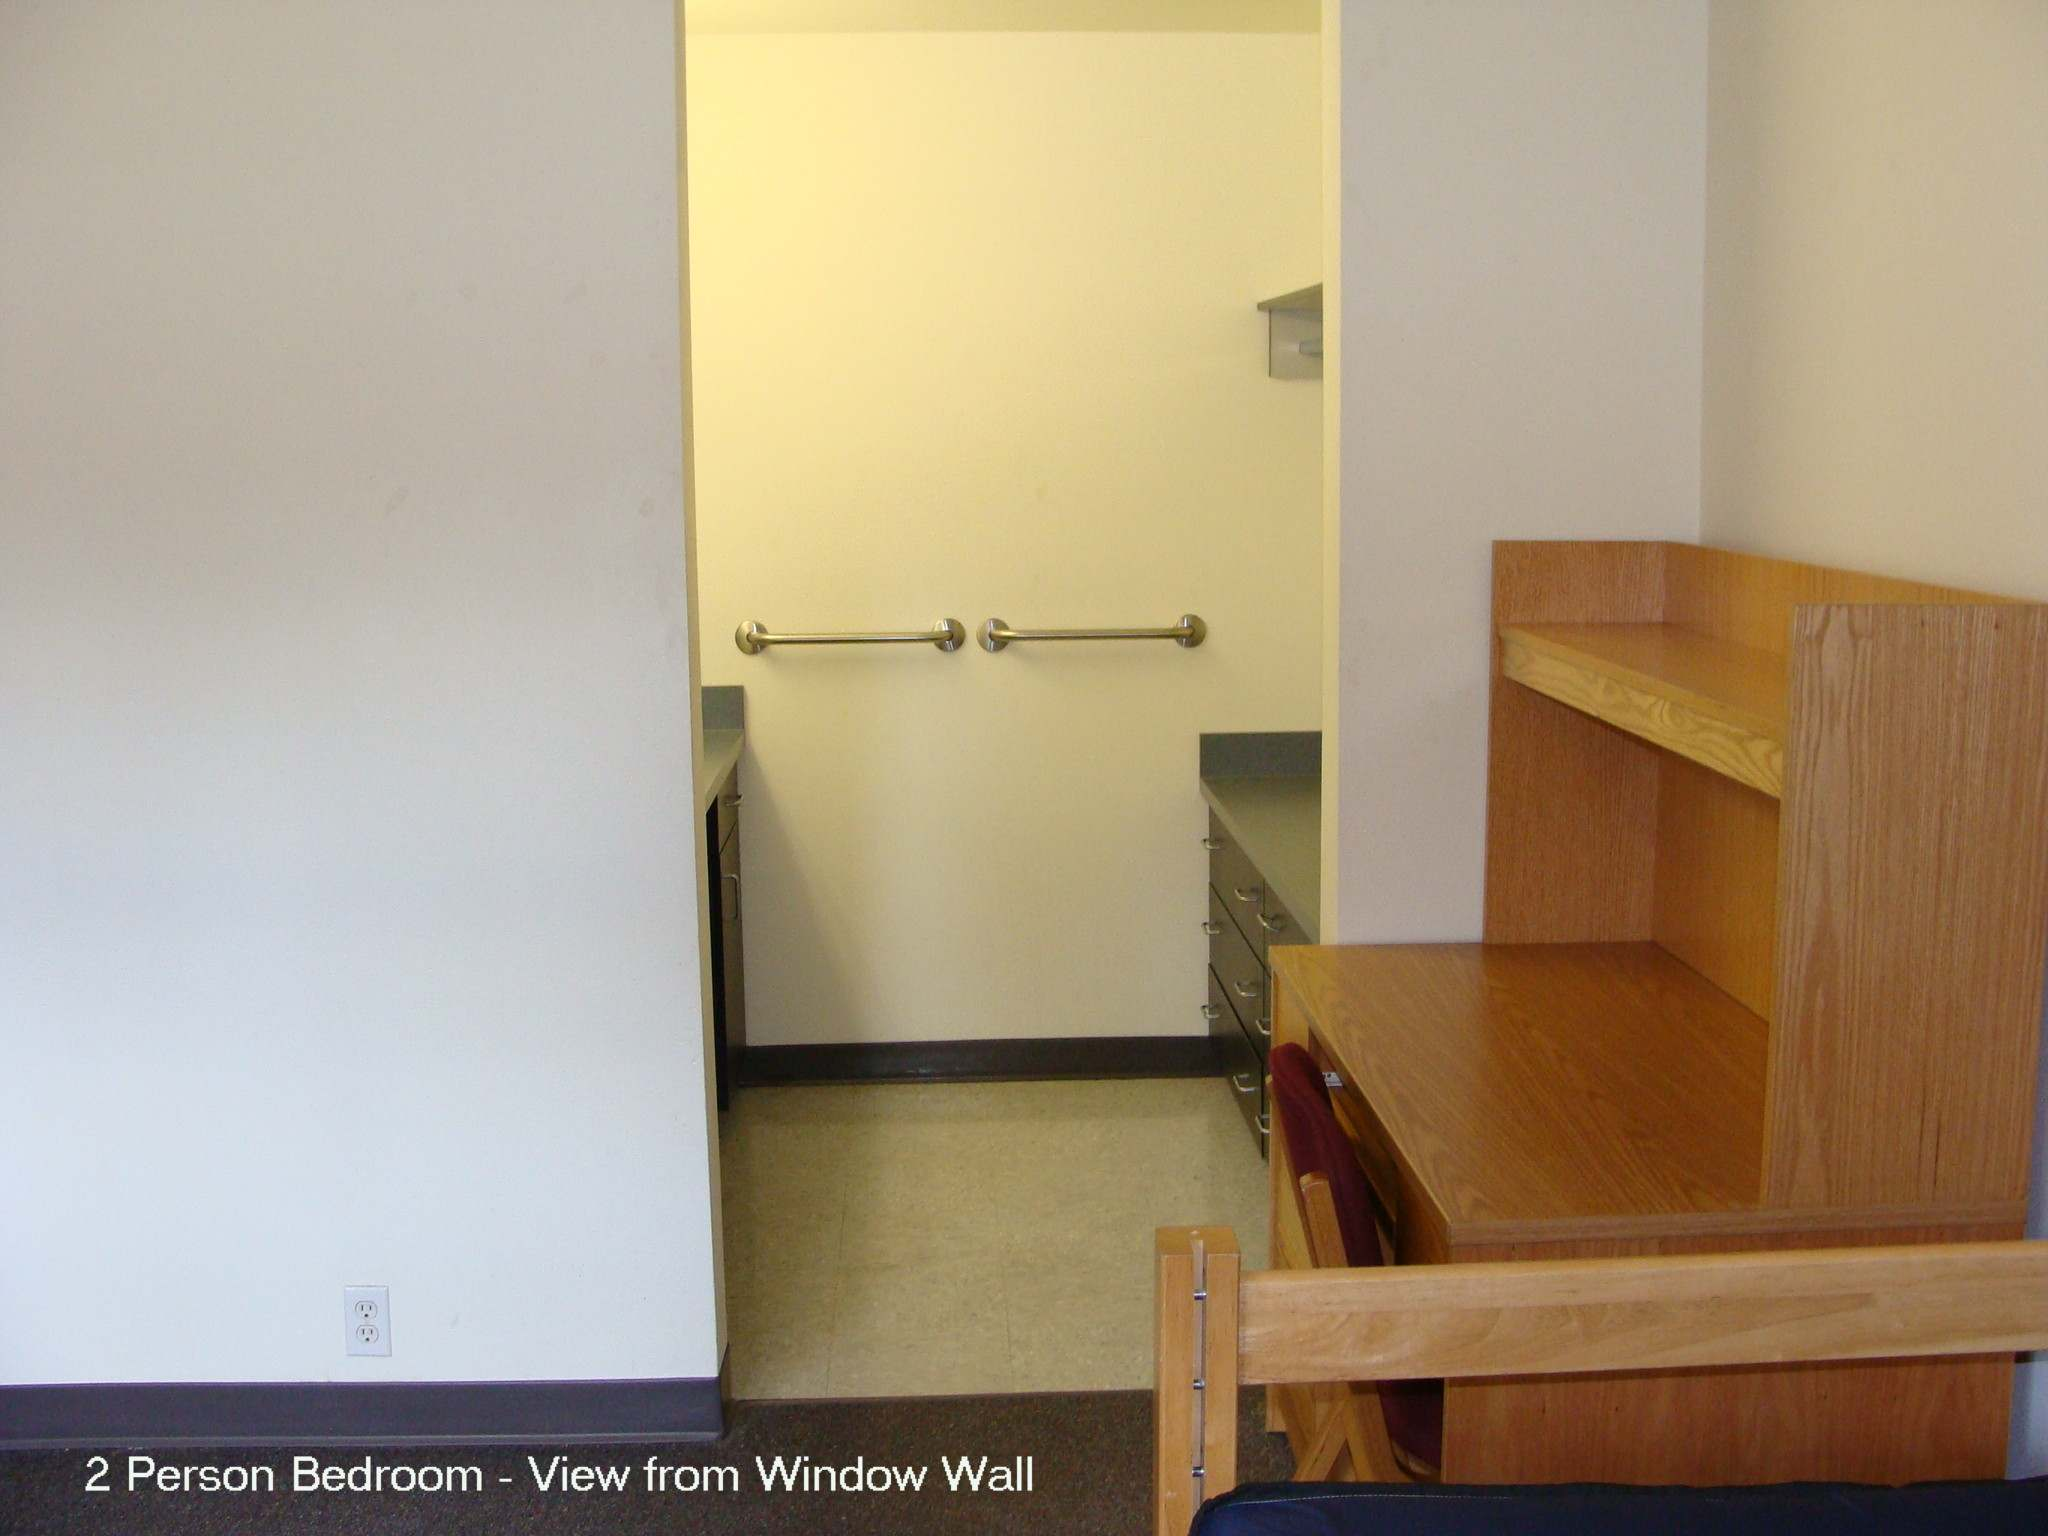 2 person bedroom - view from window wall